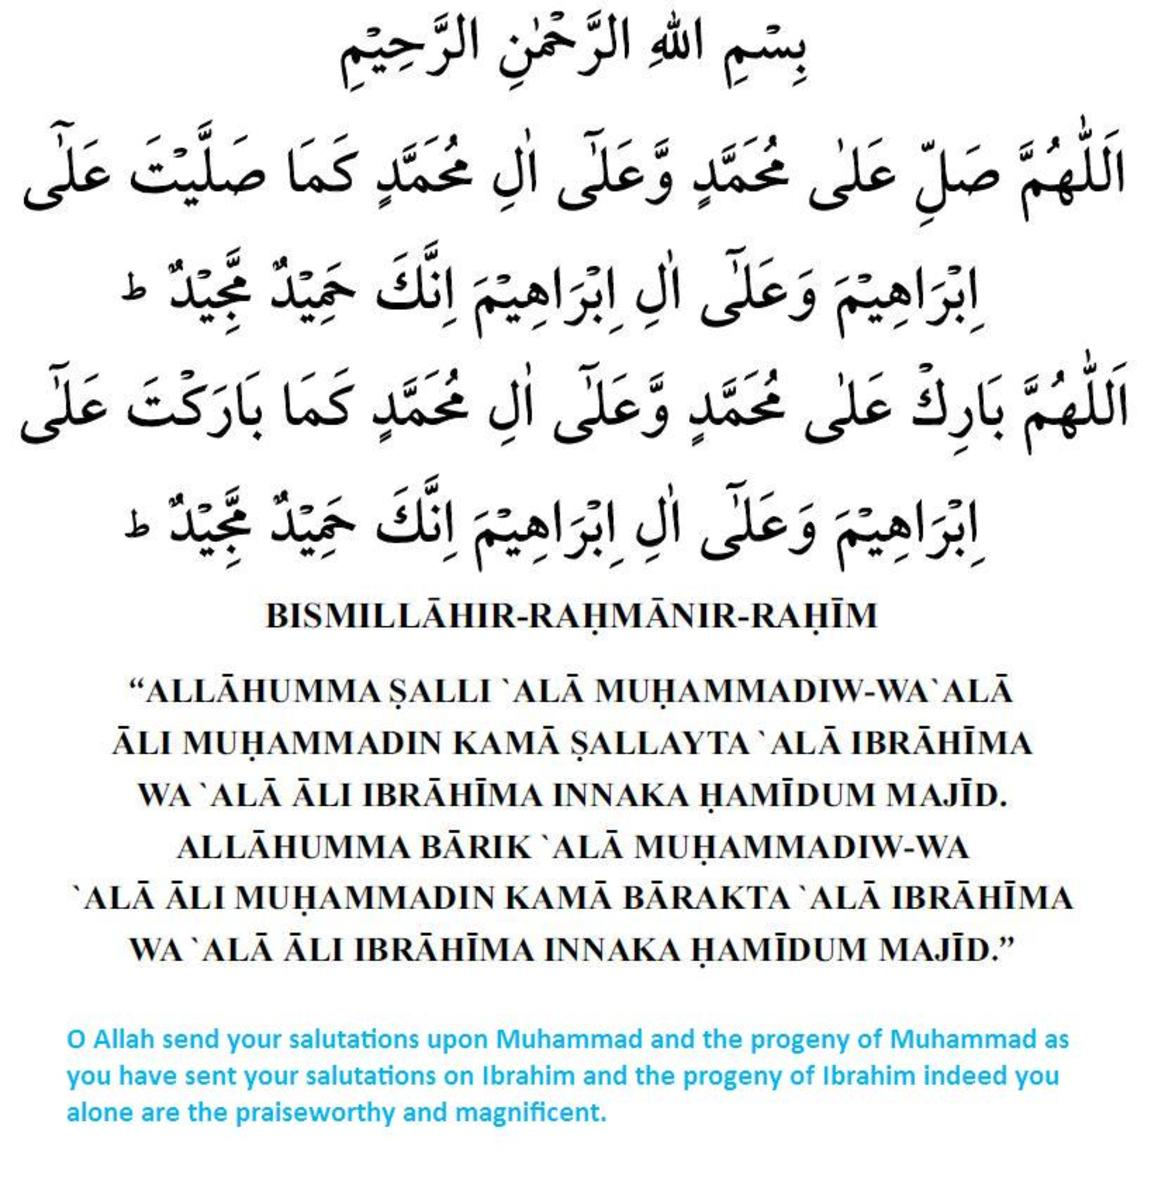 This dua is recited in every Salah.